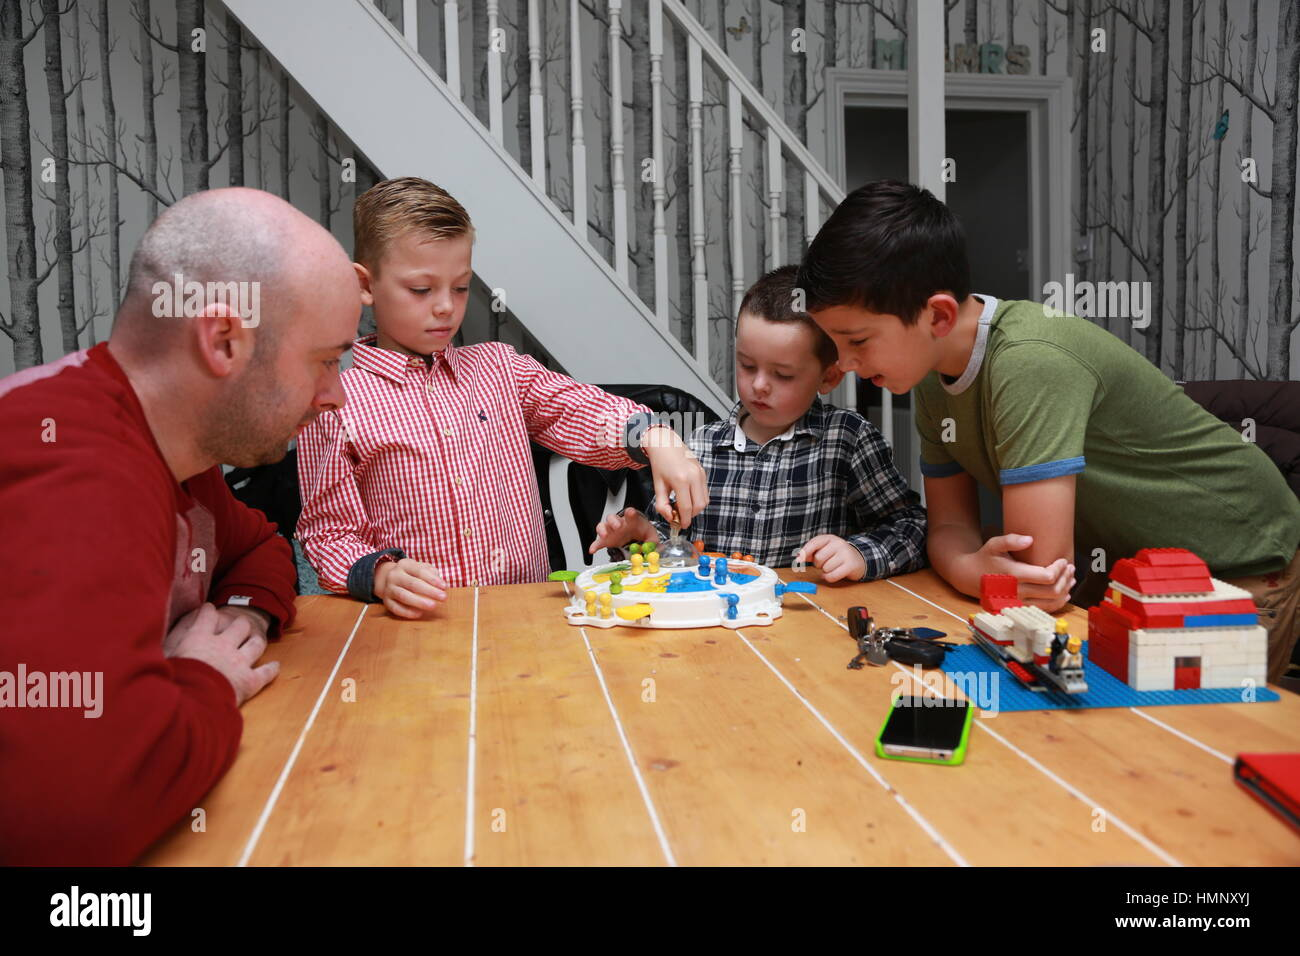 Family playing board games - Stock Image